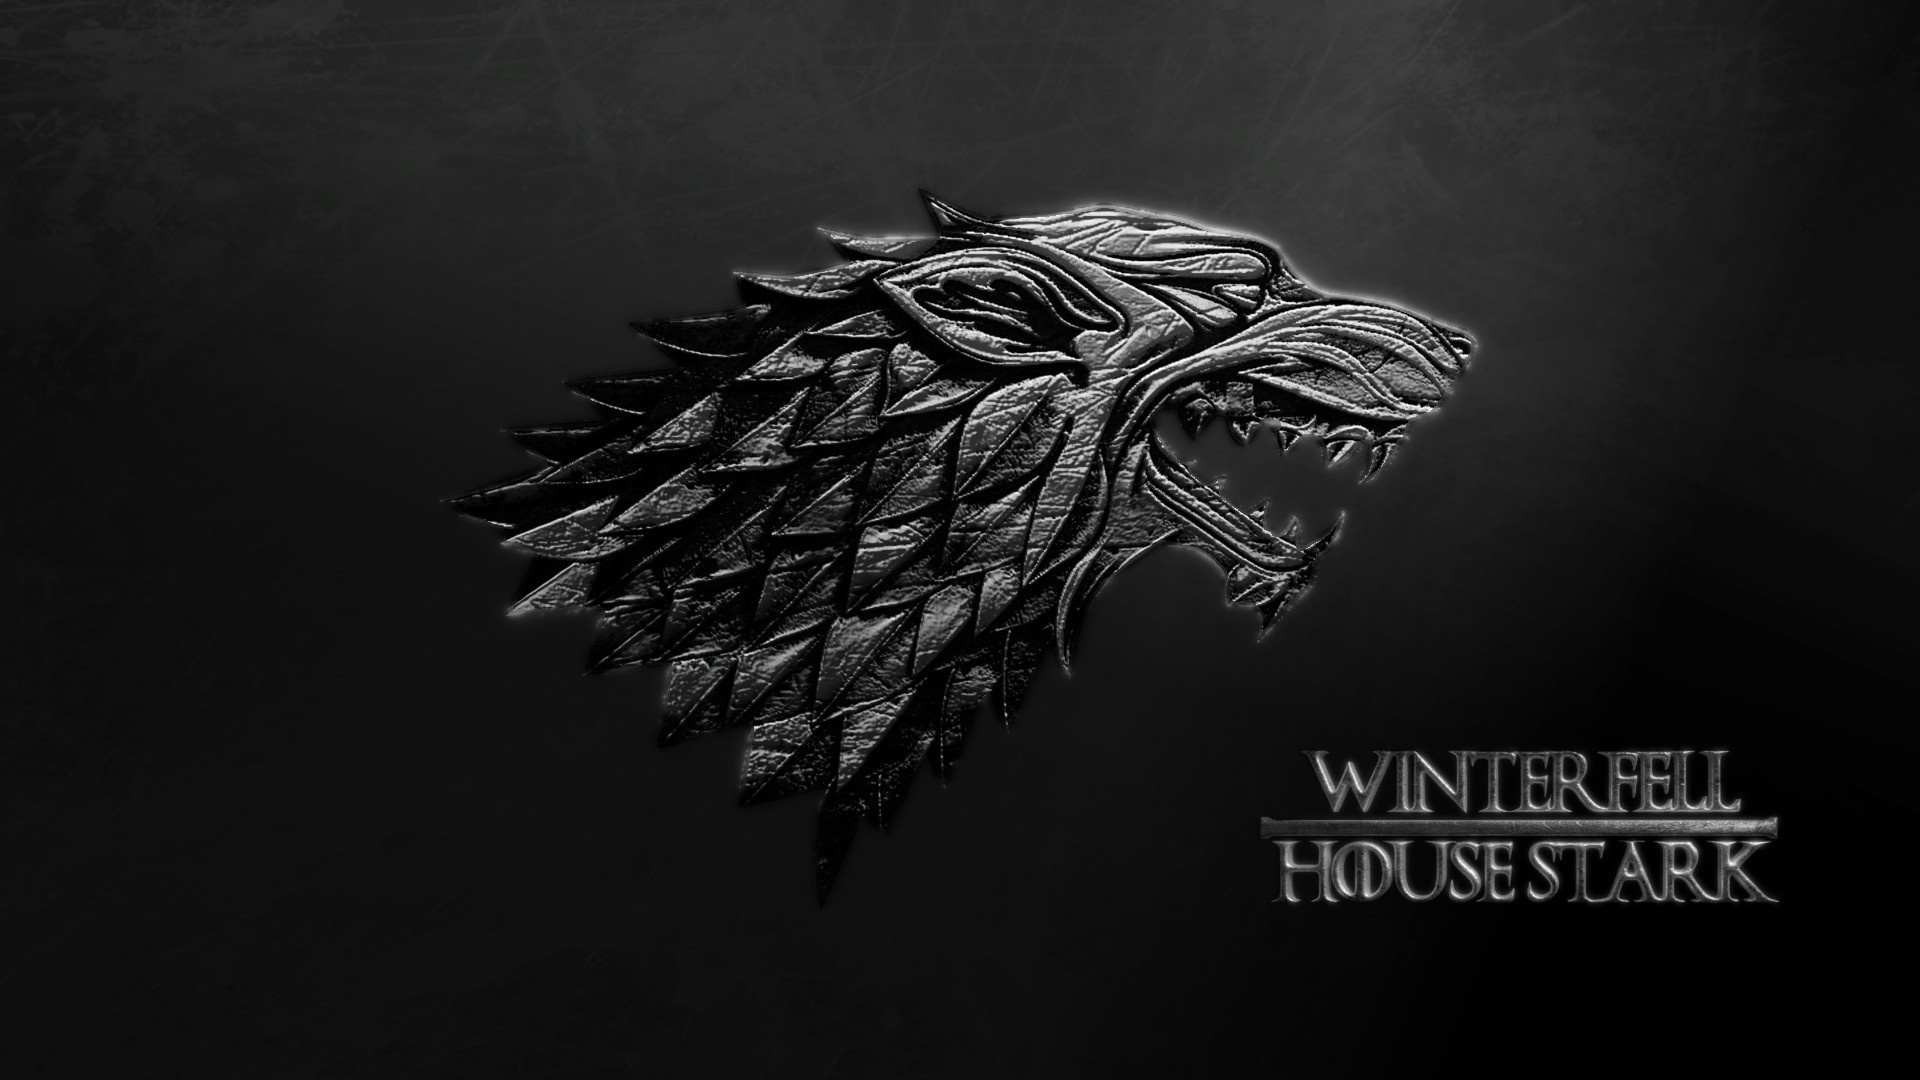 House Stark Game Of Thrones Wallpaper Hd With High-resolution - Stark High Resolution Game Of Thrones Wallpaper Hd - HD Wallpaper